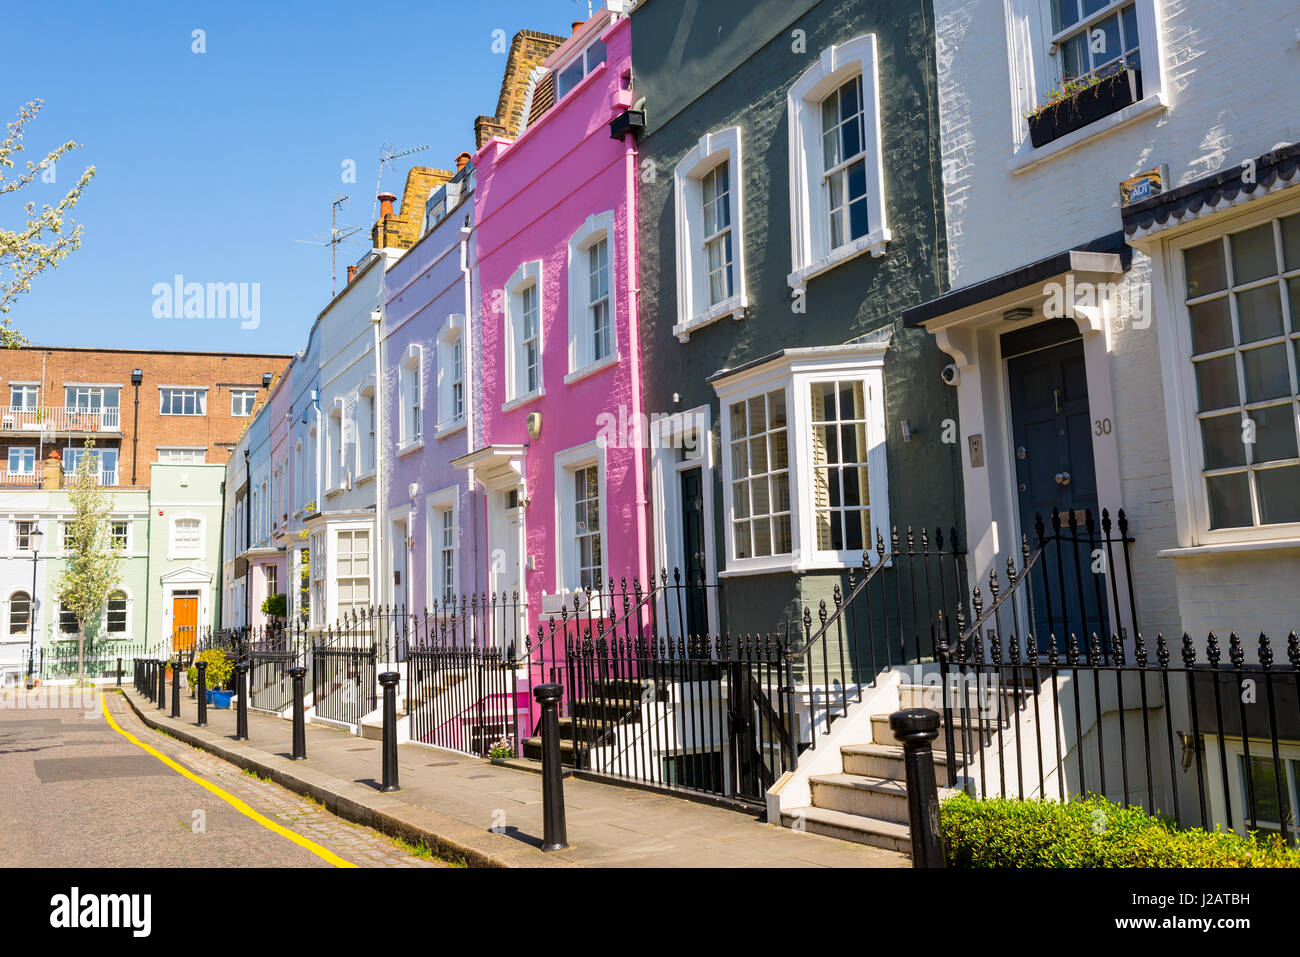 mews houses stock photos mews houses stock images alamy. Black Bedroom Furniture Sets. Home Design Ideas